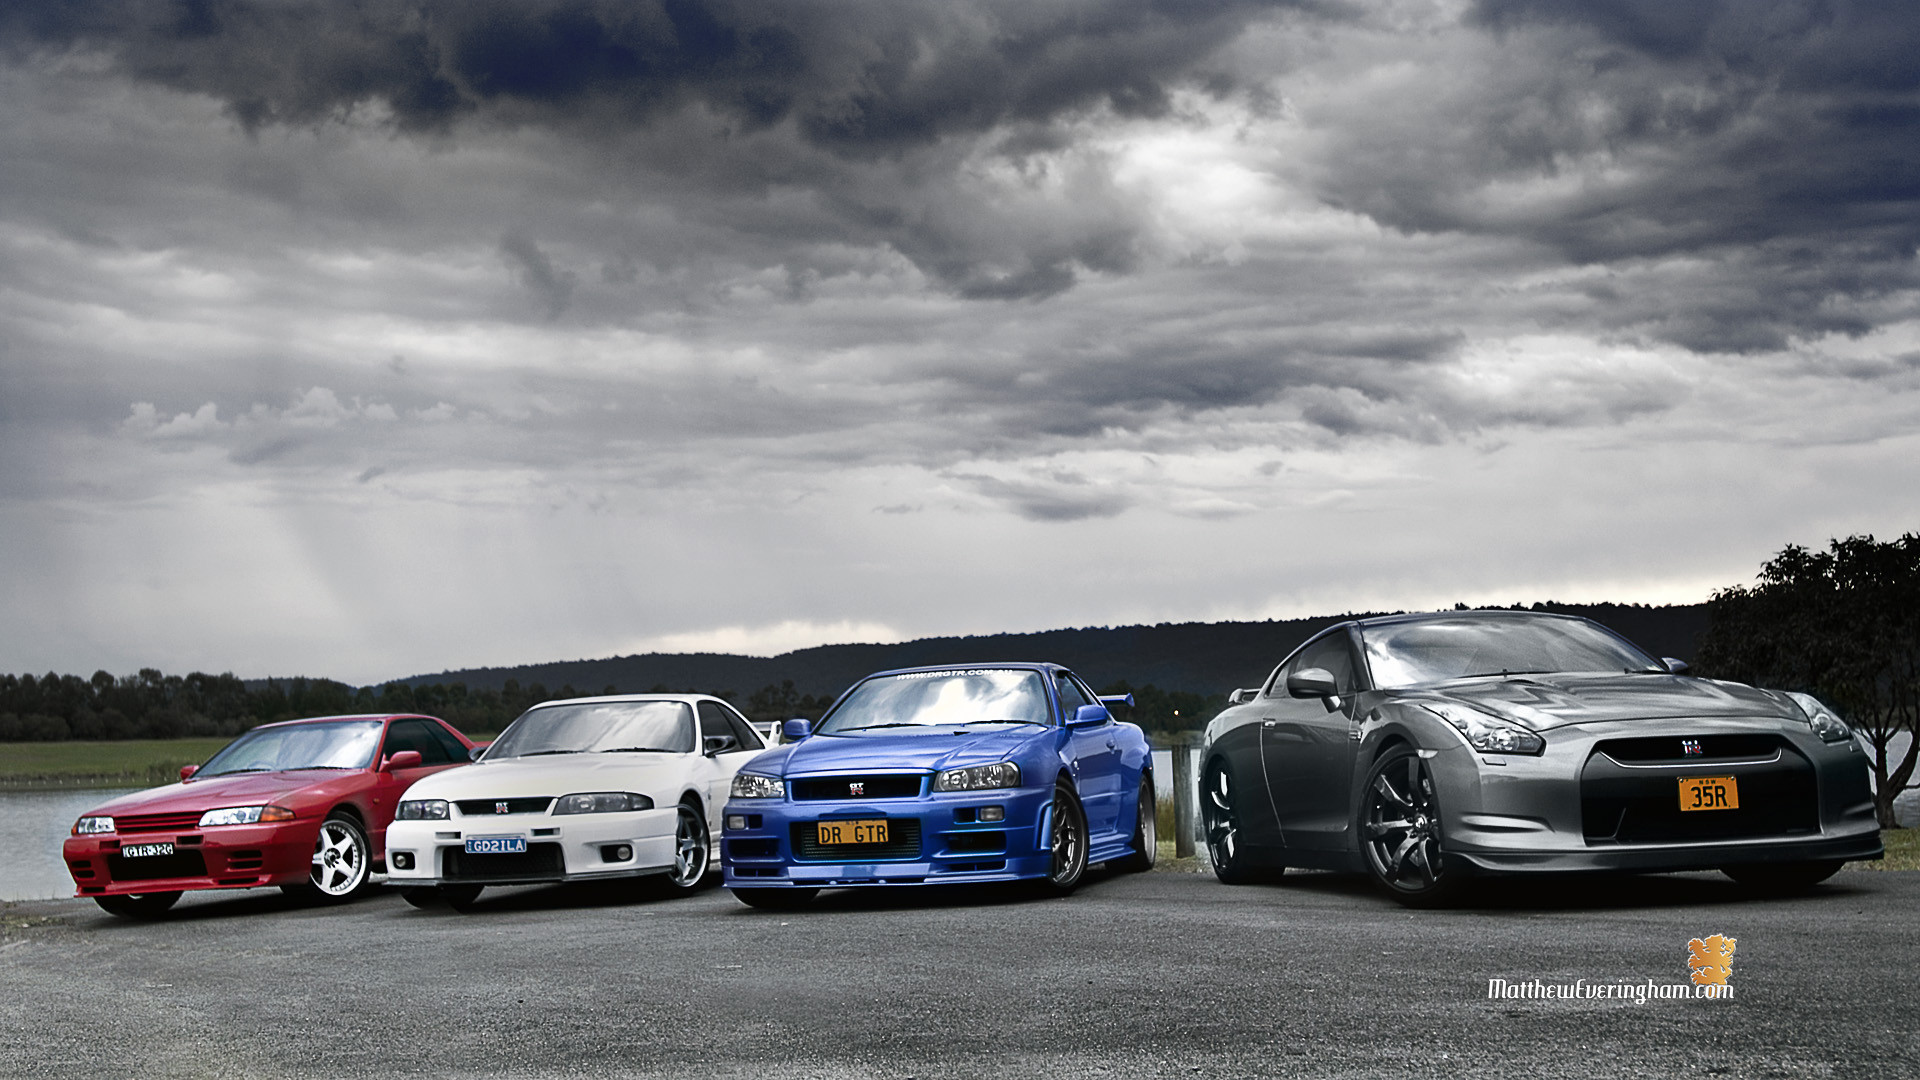 gt-r lineage